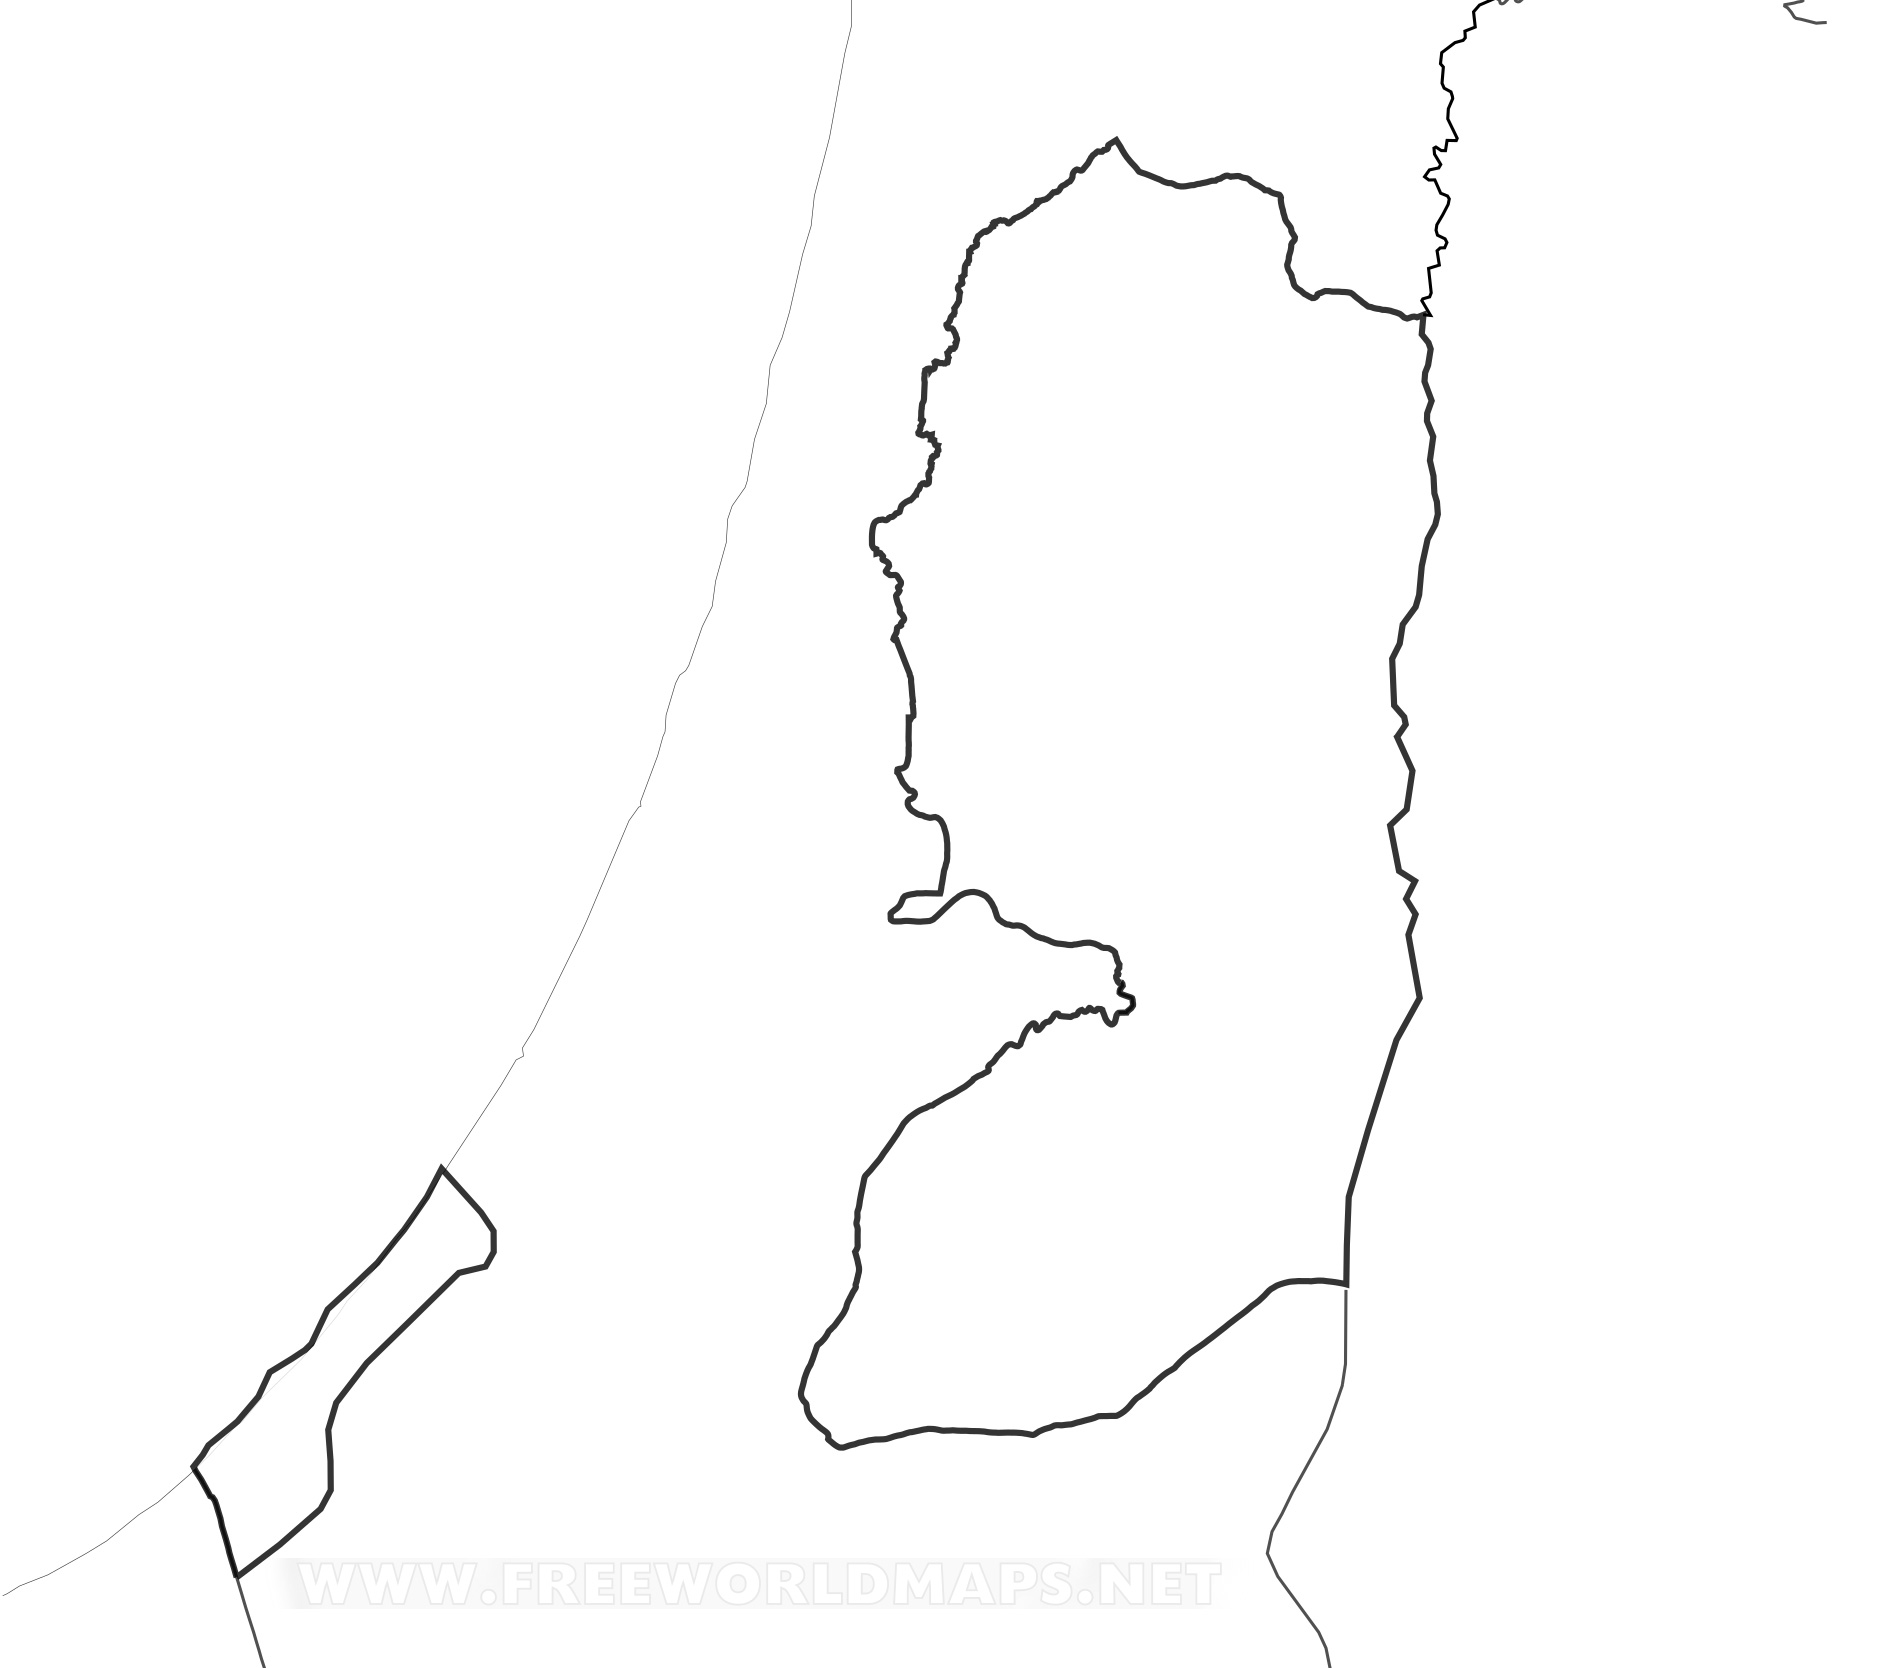 outline map of israel and palestine, engine diagram, location of palestine on world map